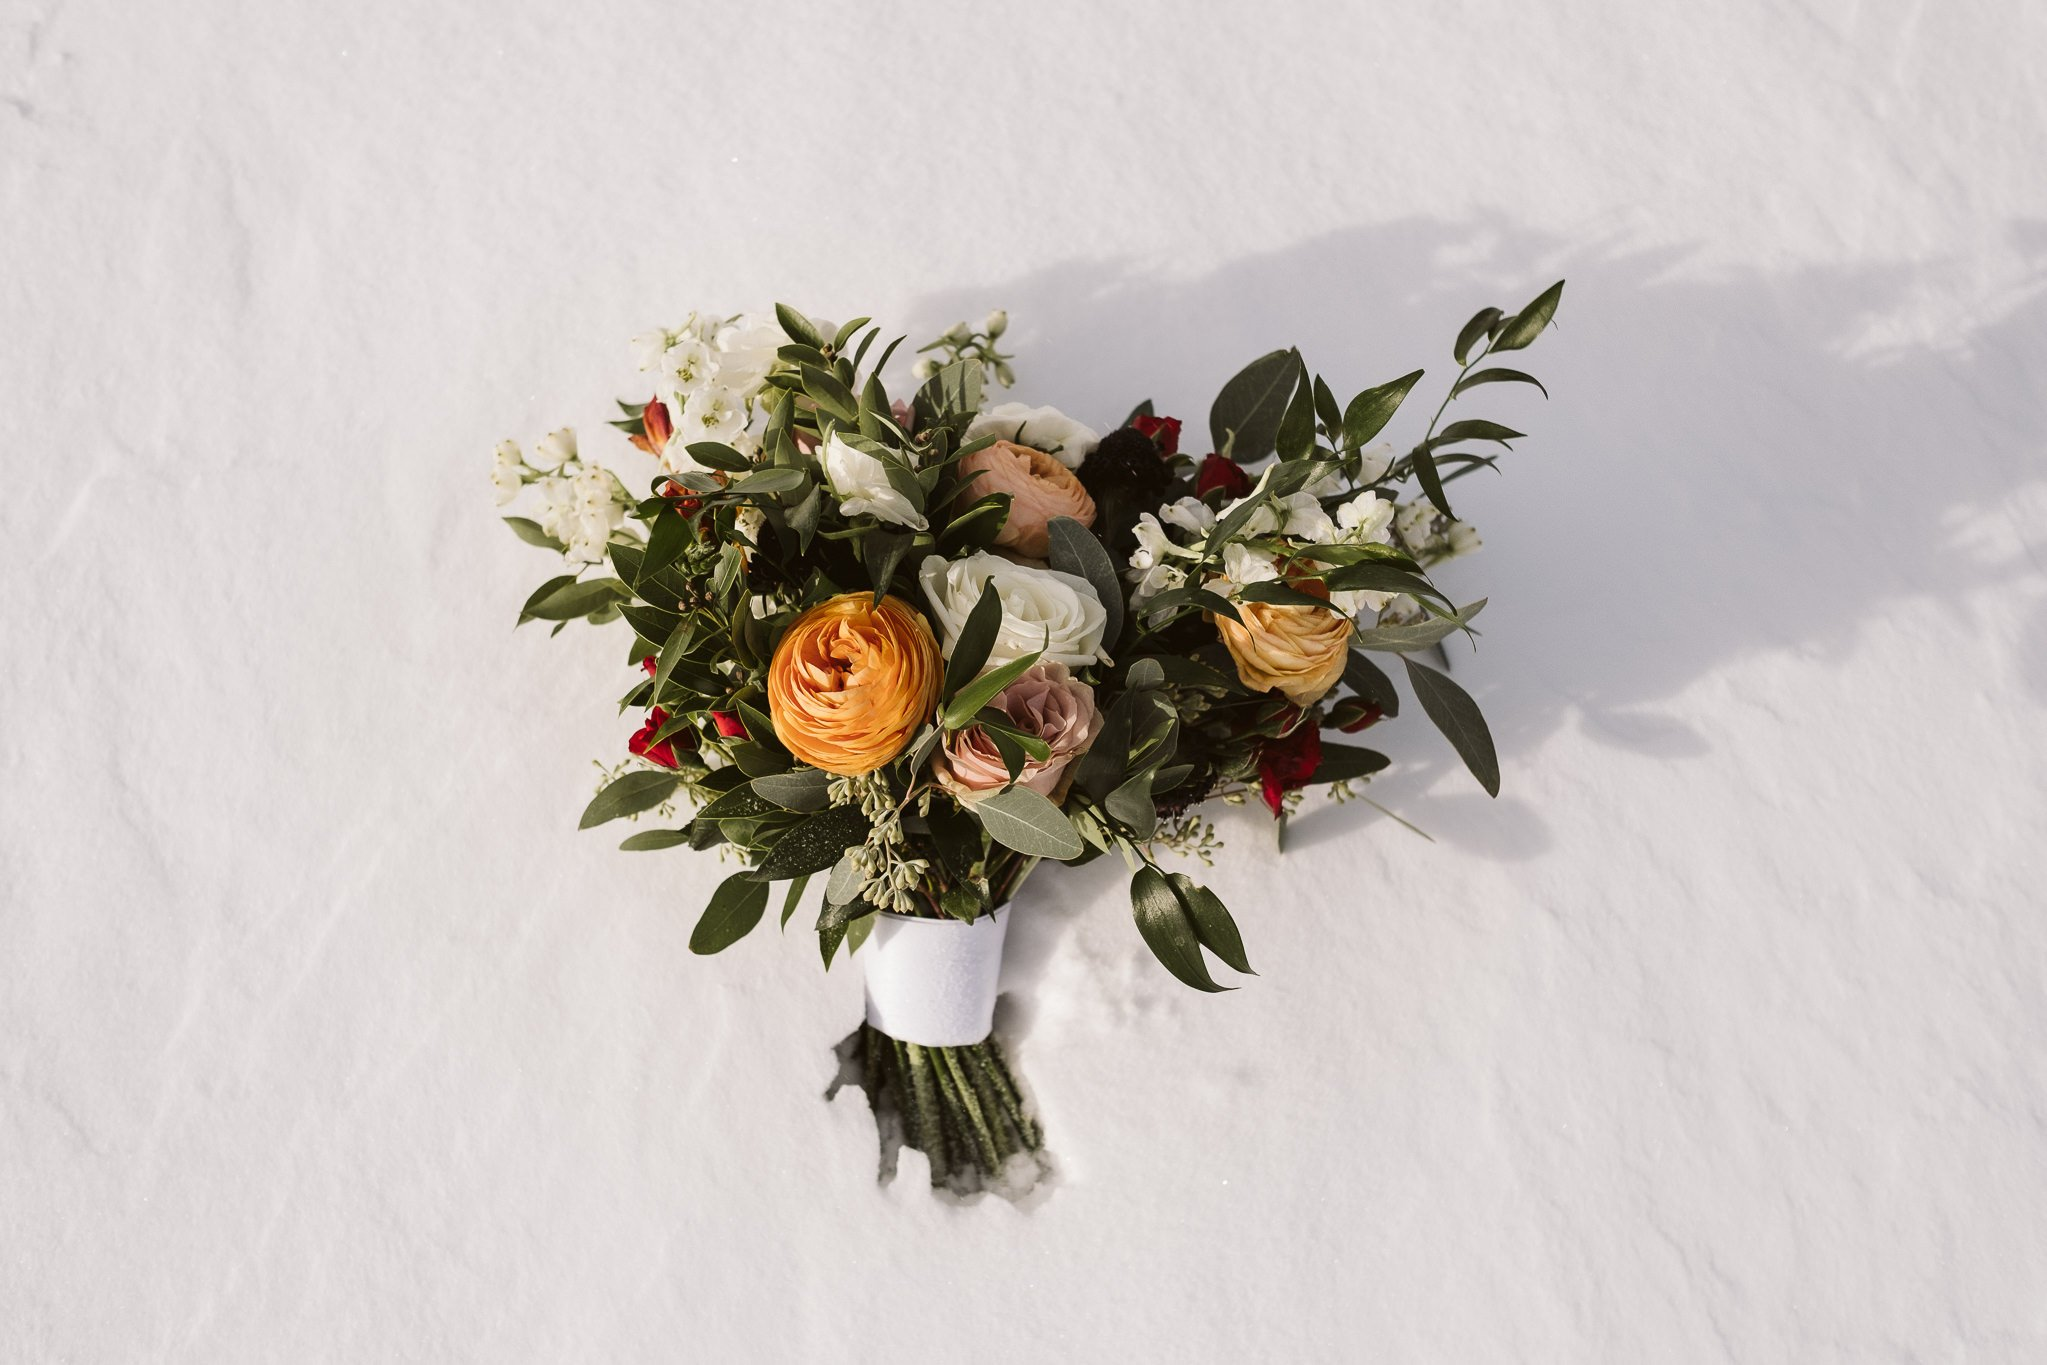 Wedding bouquet with orange and yellow flowers in snow